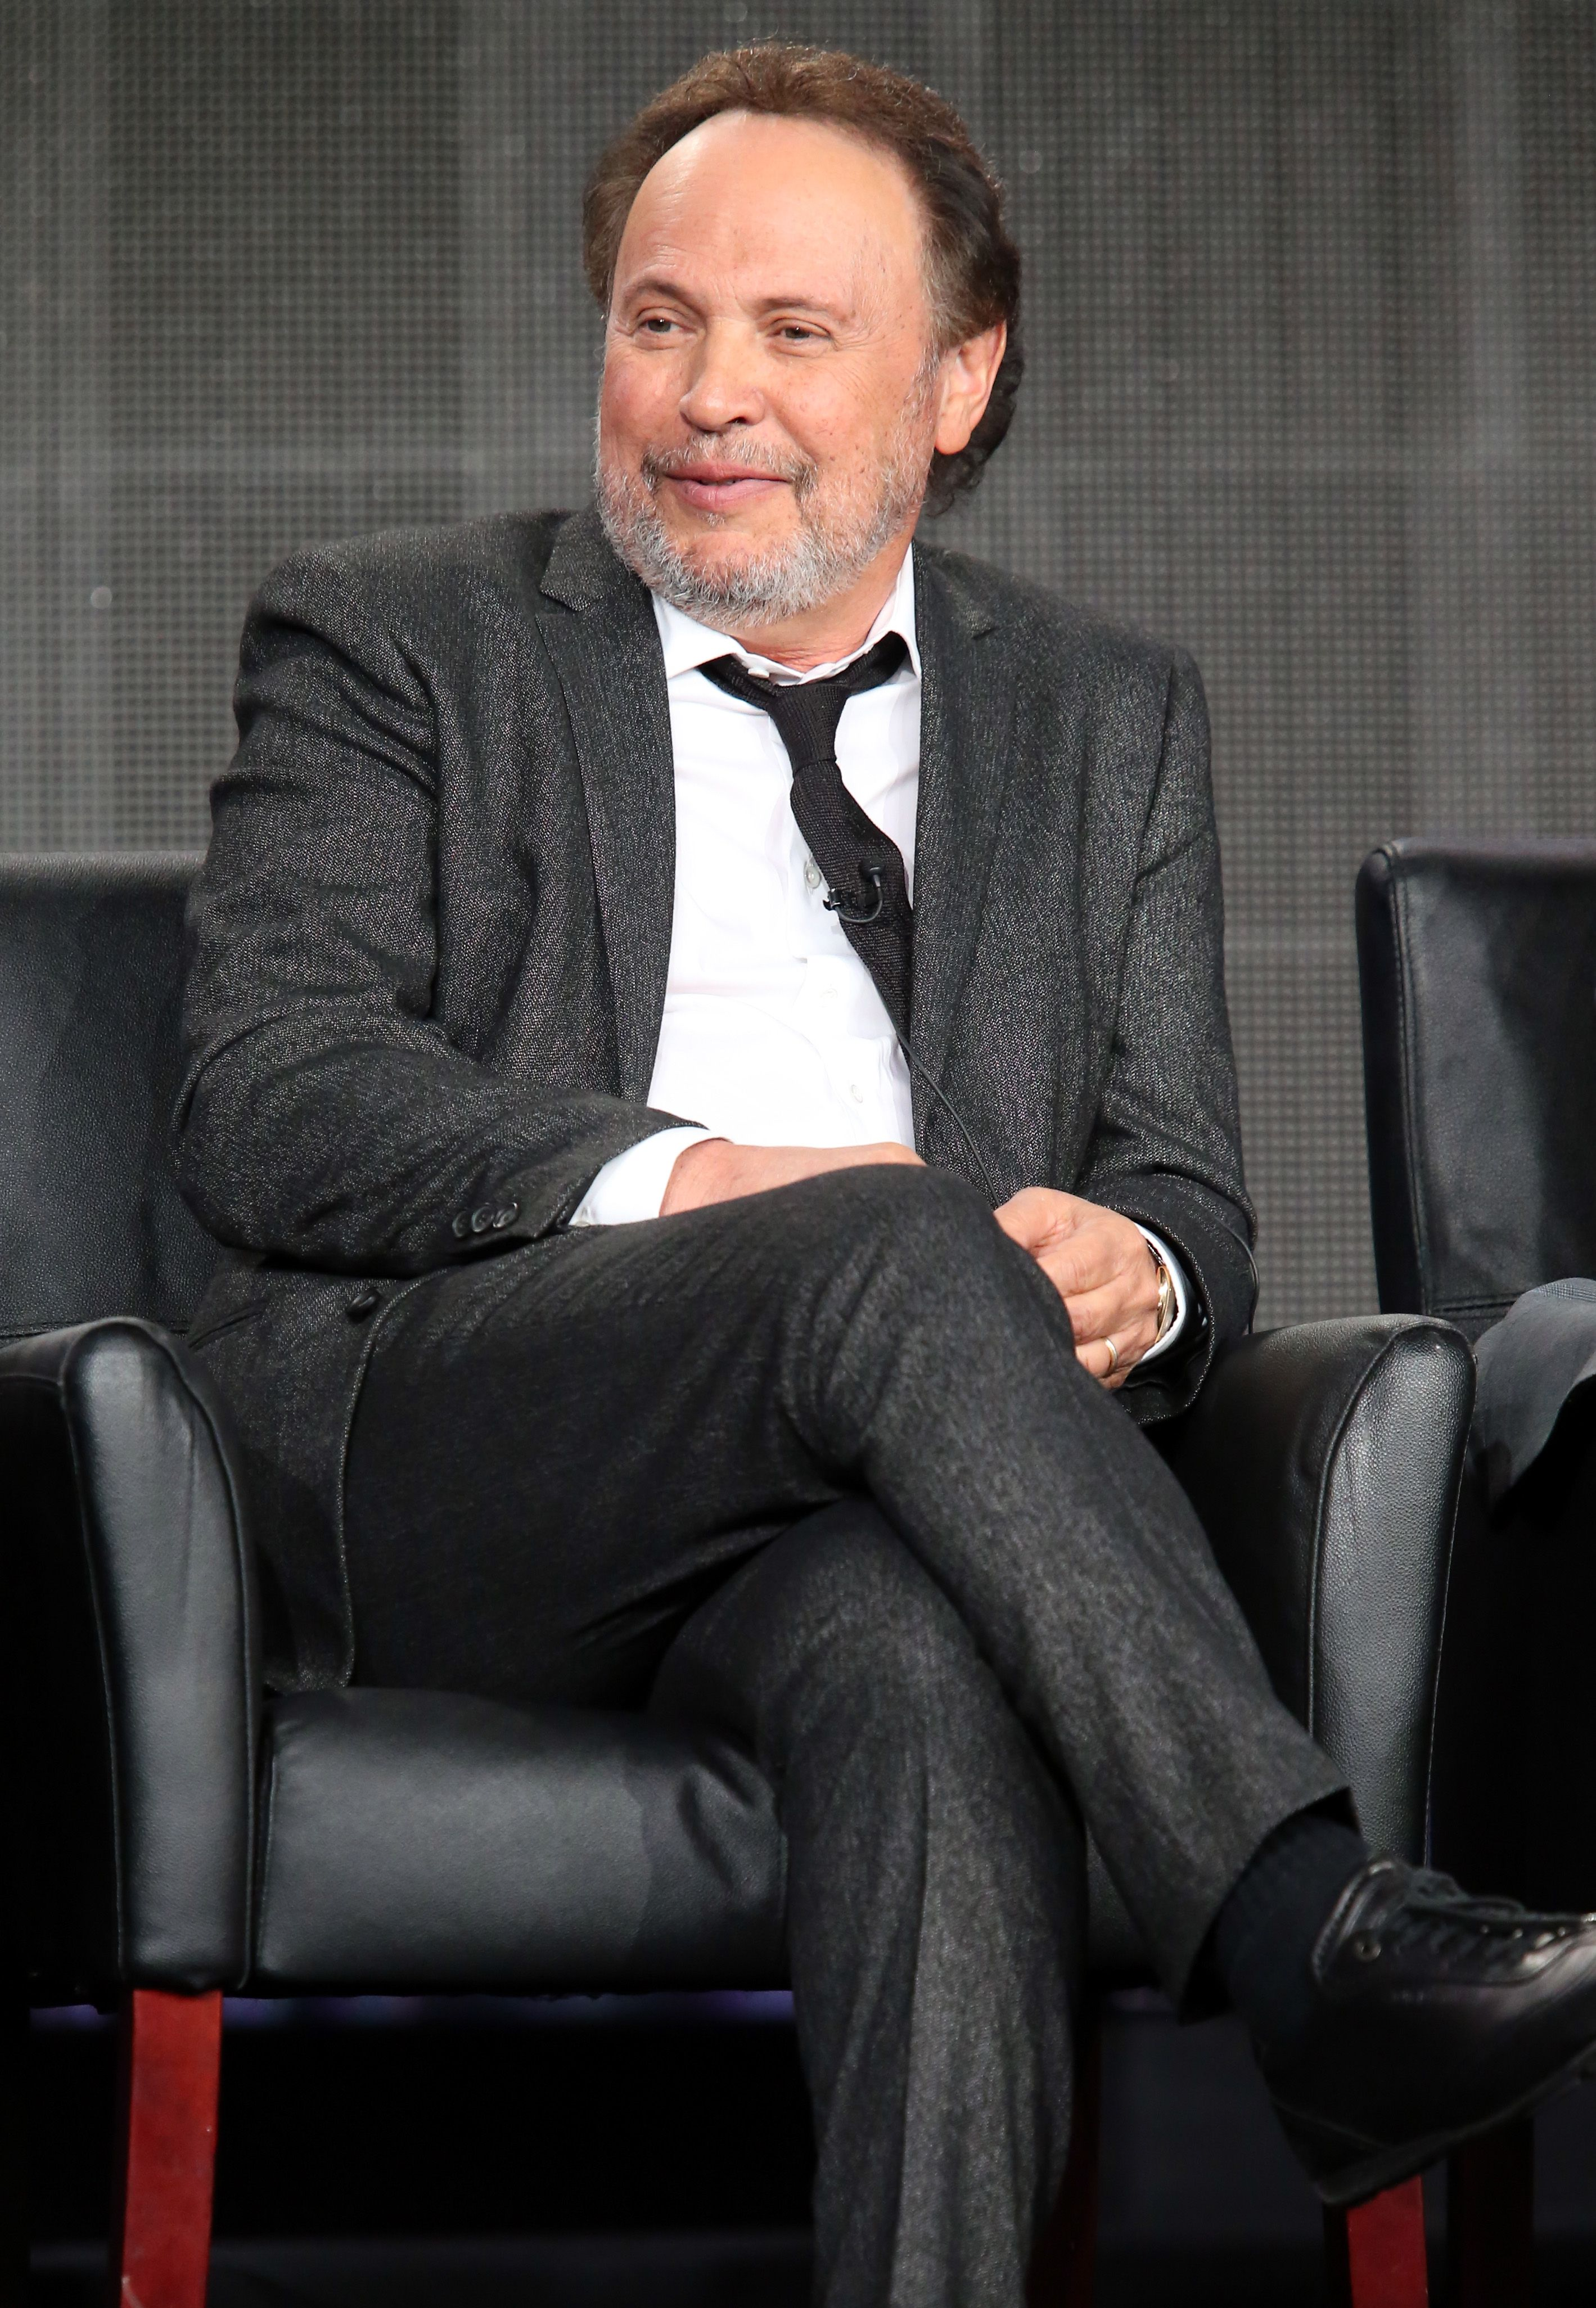 Billy Crystal onstage at the 'The Comedians' panel discussion during the Television Critics Association press tou rin 2015 in Pasadena, California | Source: Getty Images